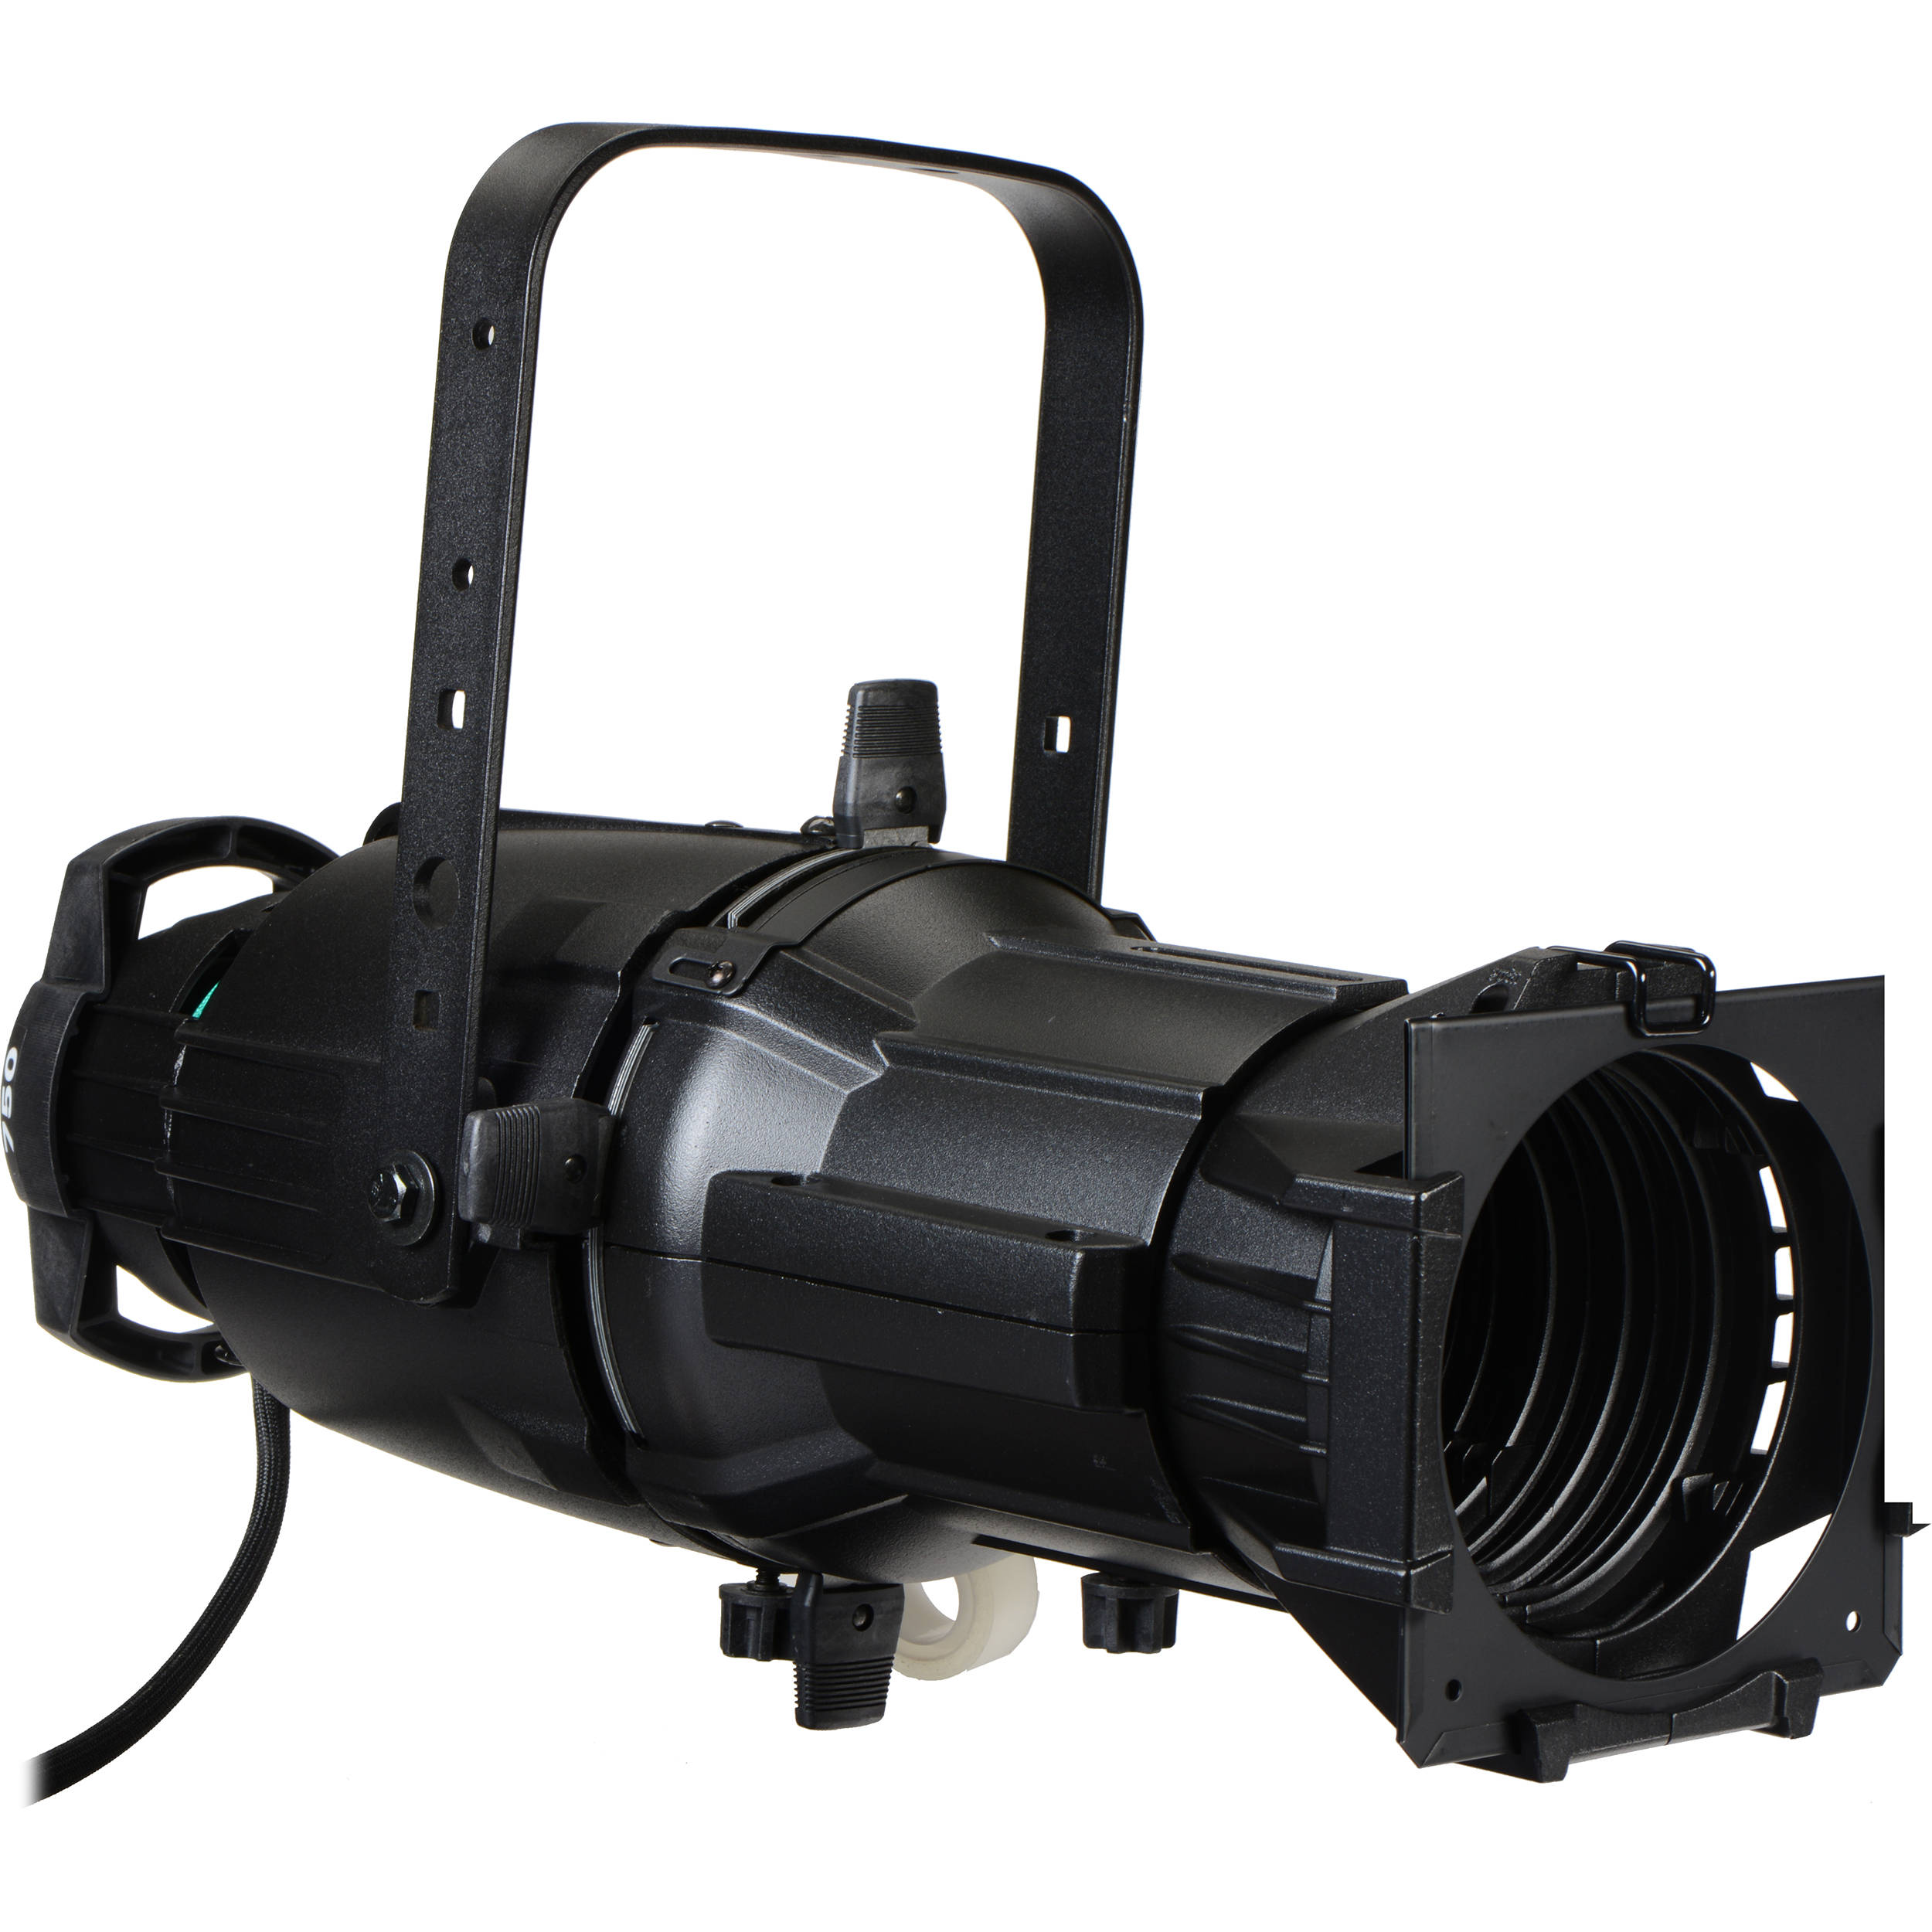 Etc Source 4 750 Watt Ellipsoidal Spotlight Black Edison Plug 50 Degrees 115 240v Ac